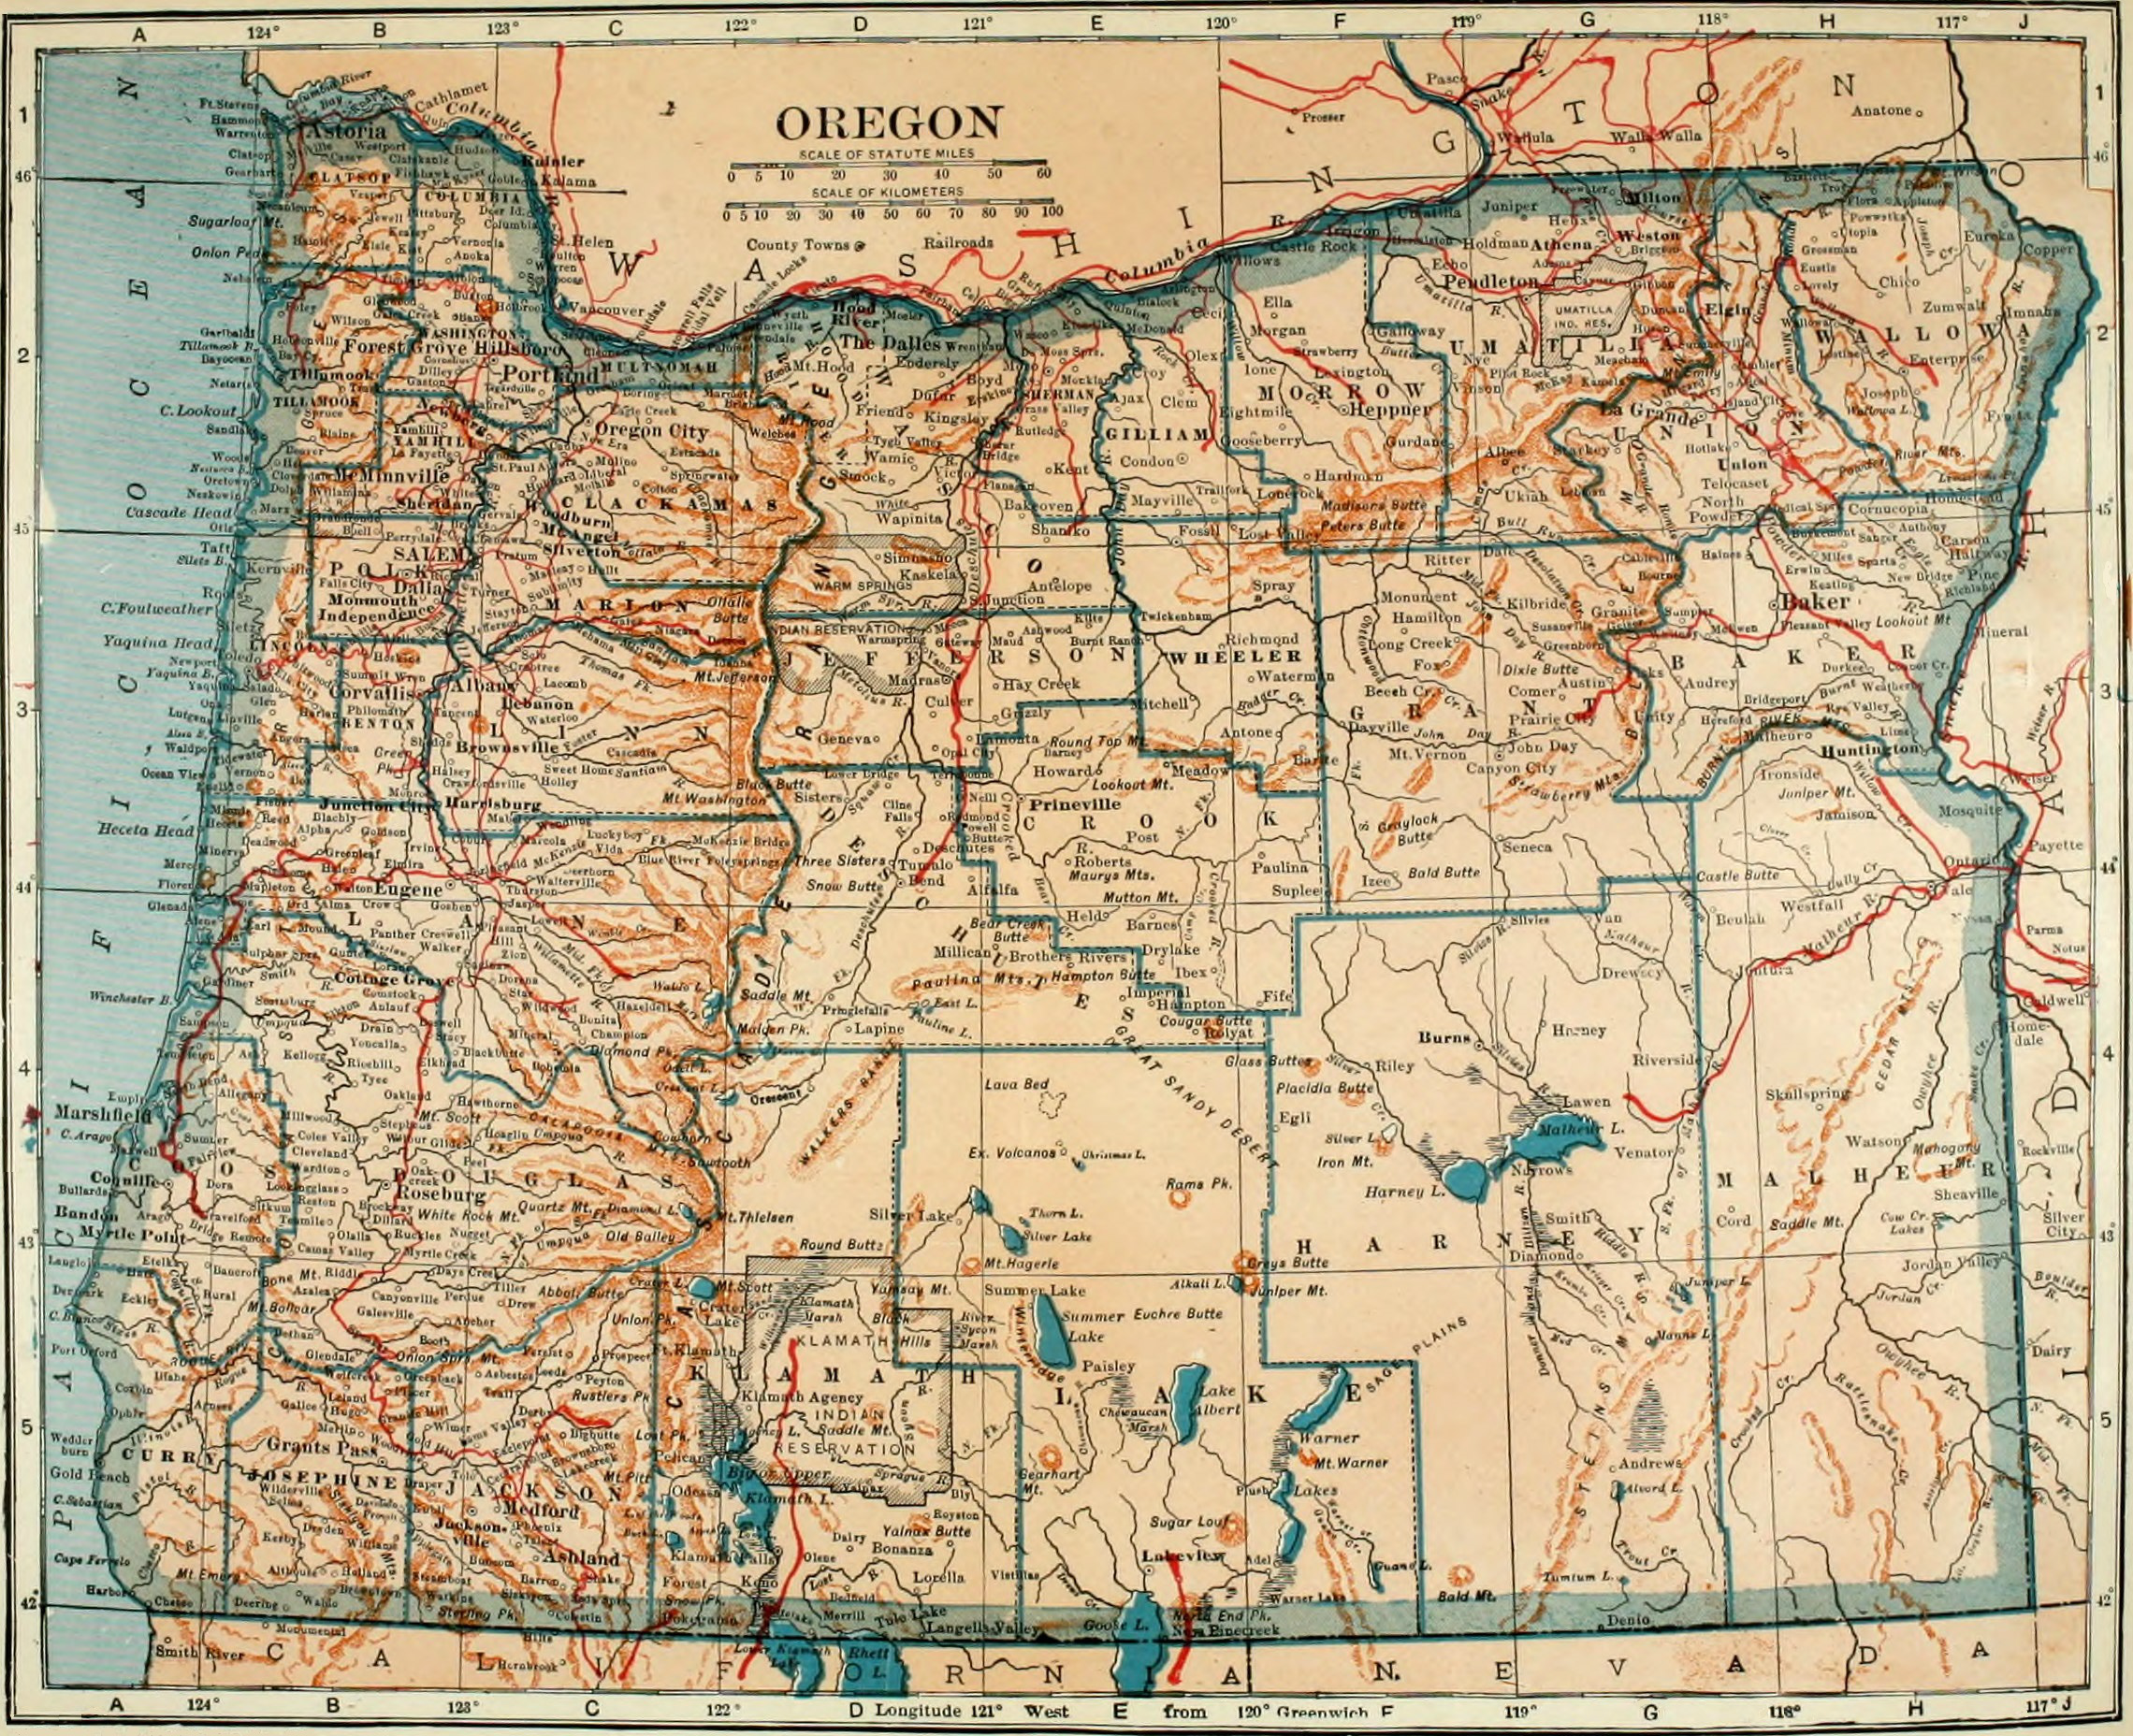 FileOregon Map Collierspng